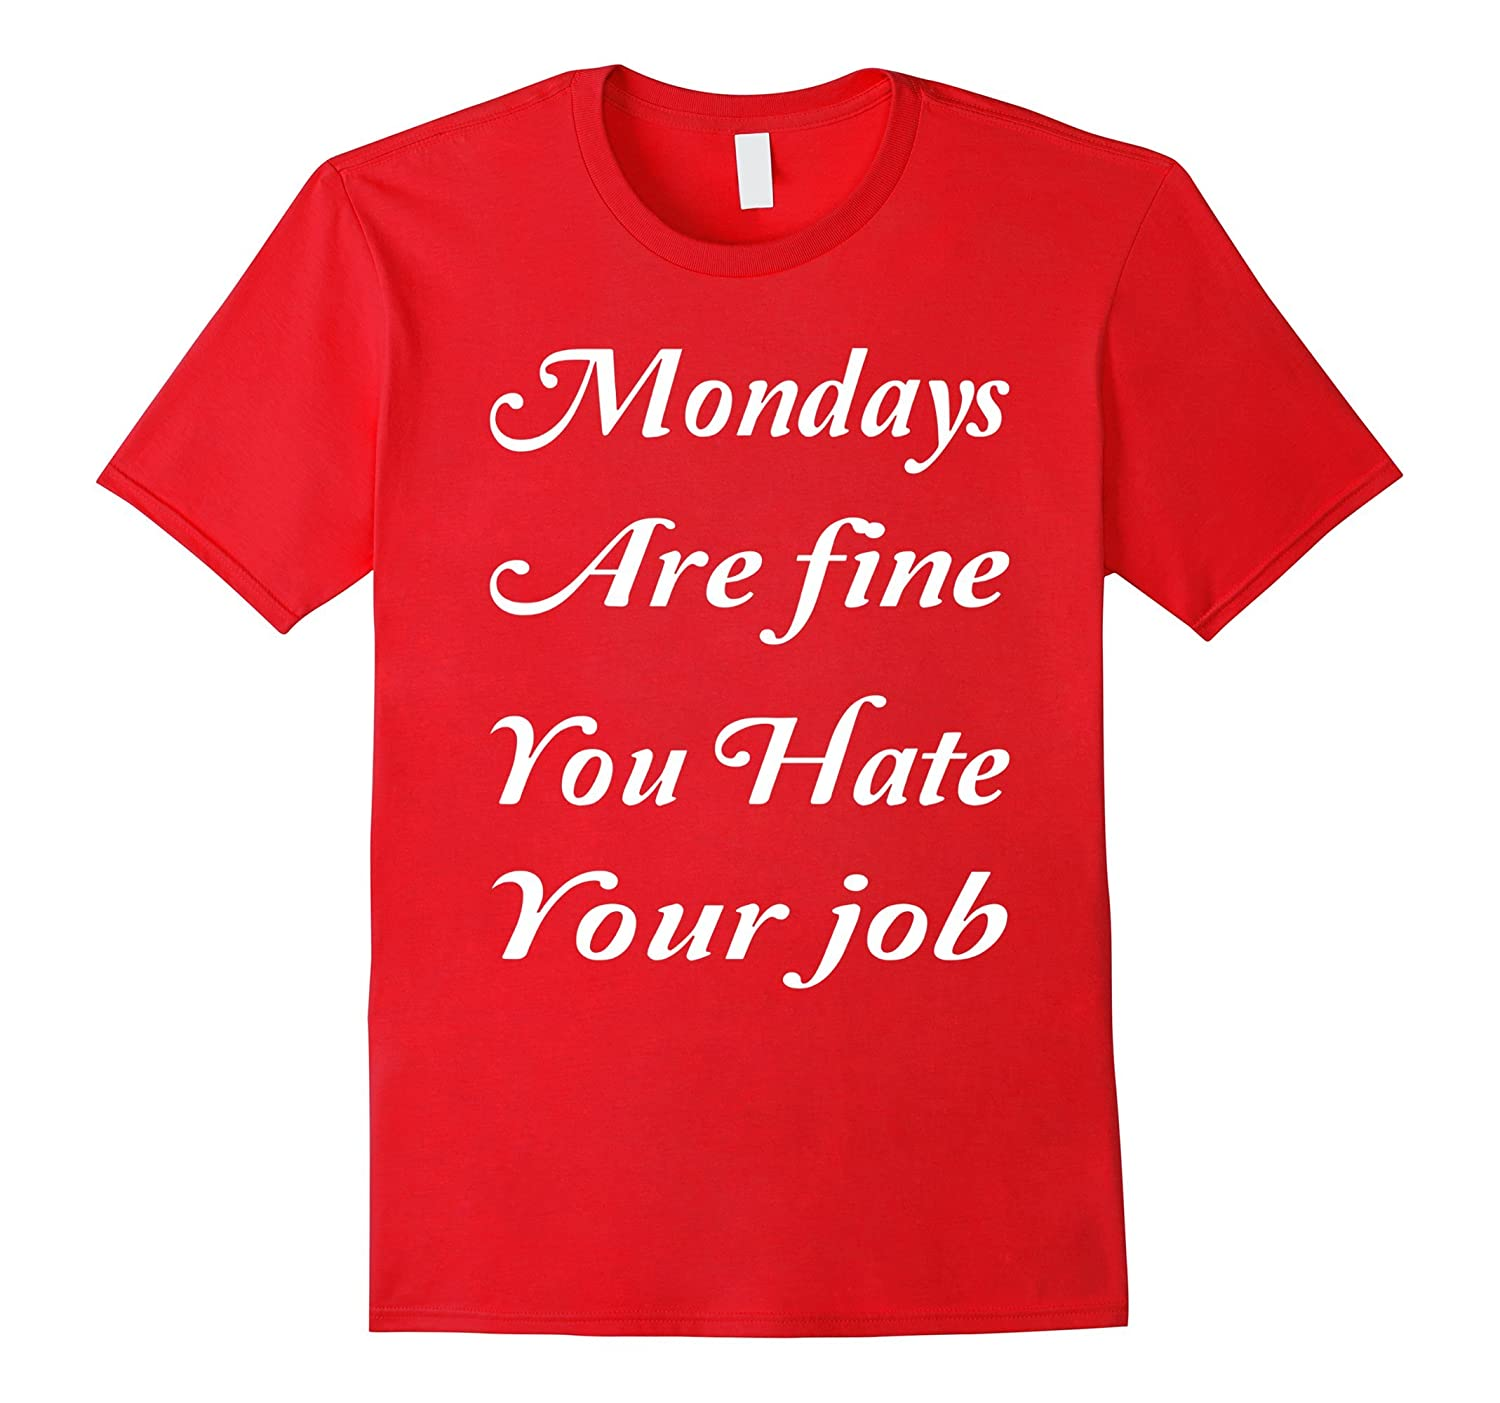 Mondays Are fine You Hate Your Job Funny T-Shirt-TJ